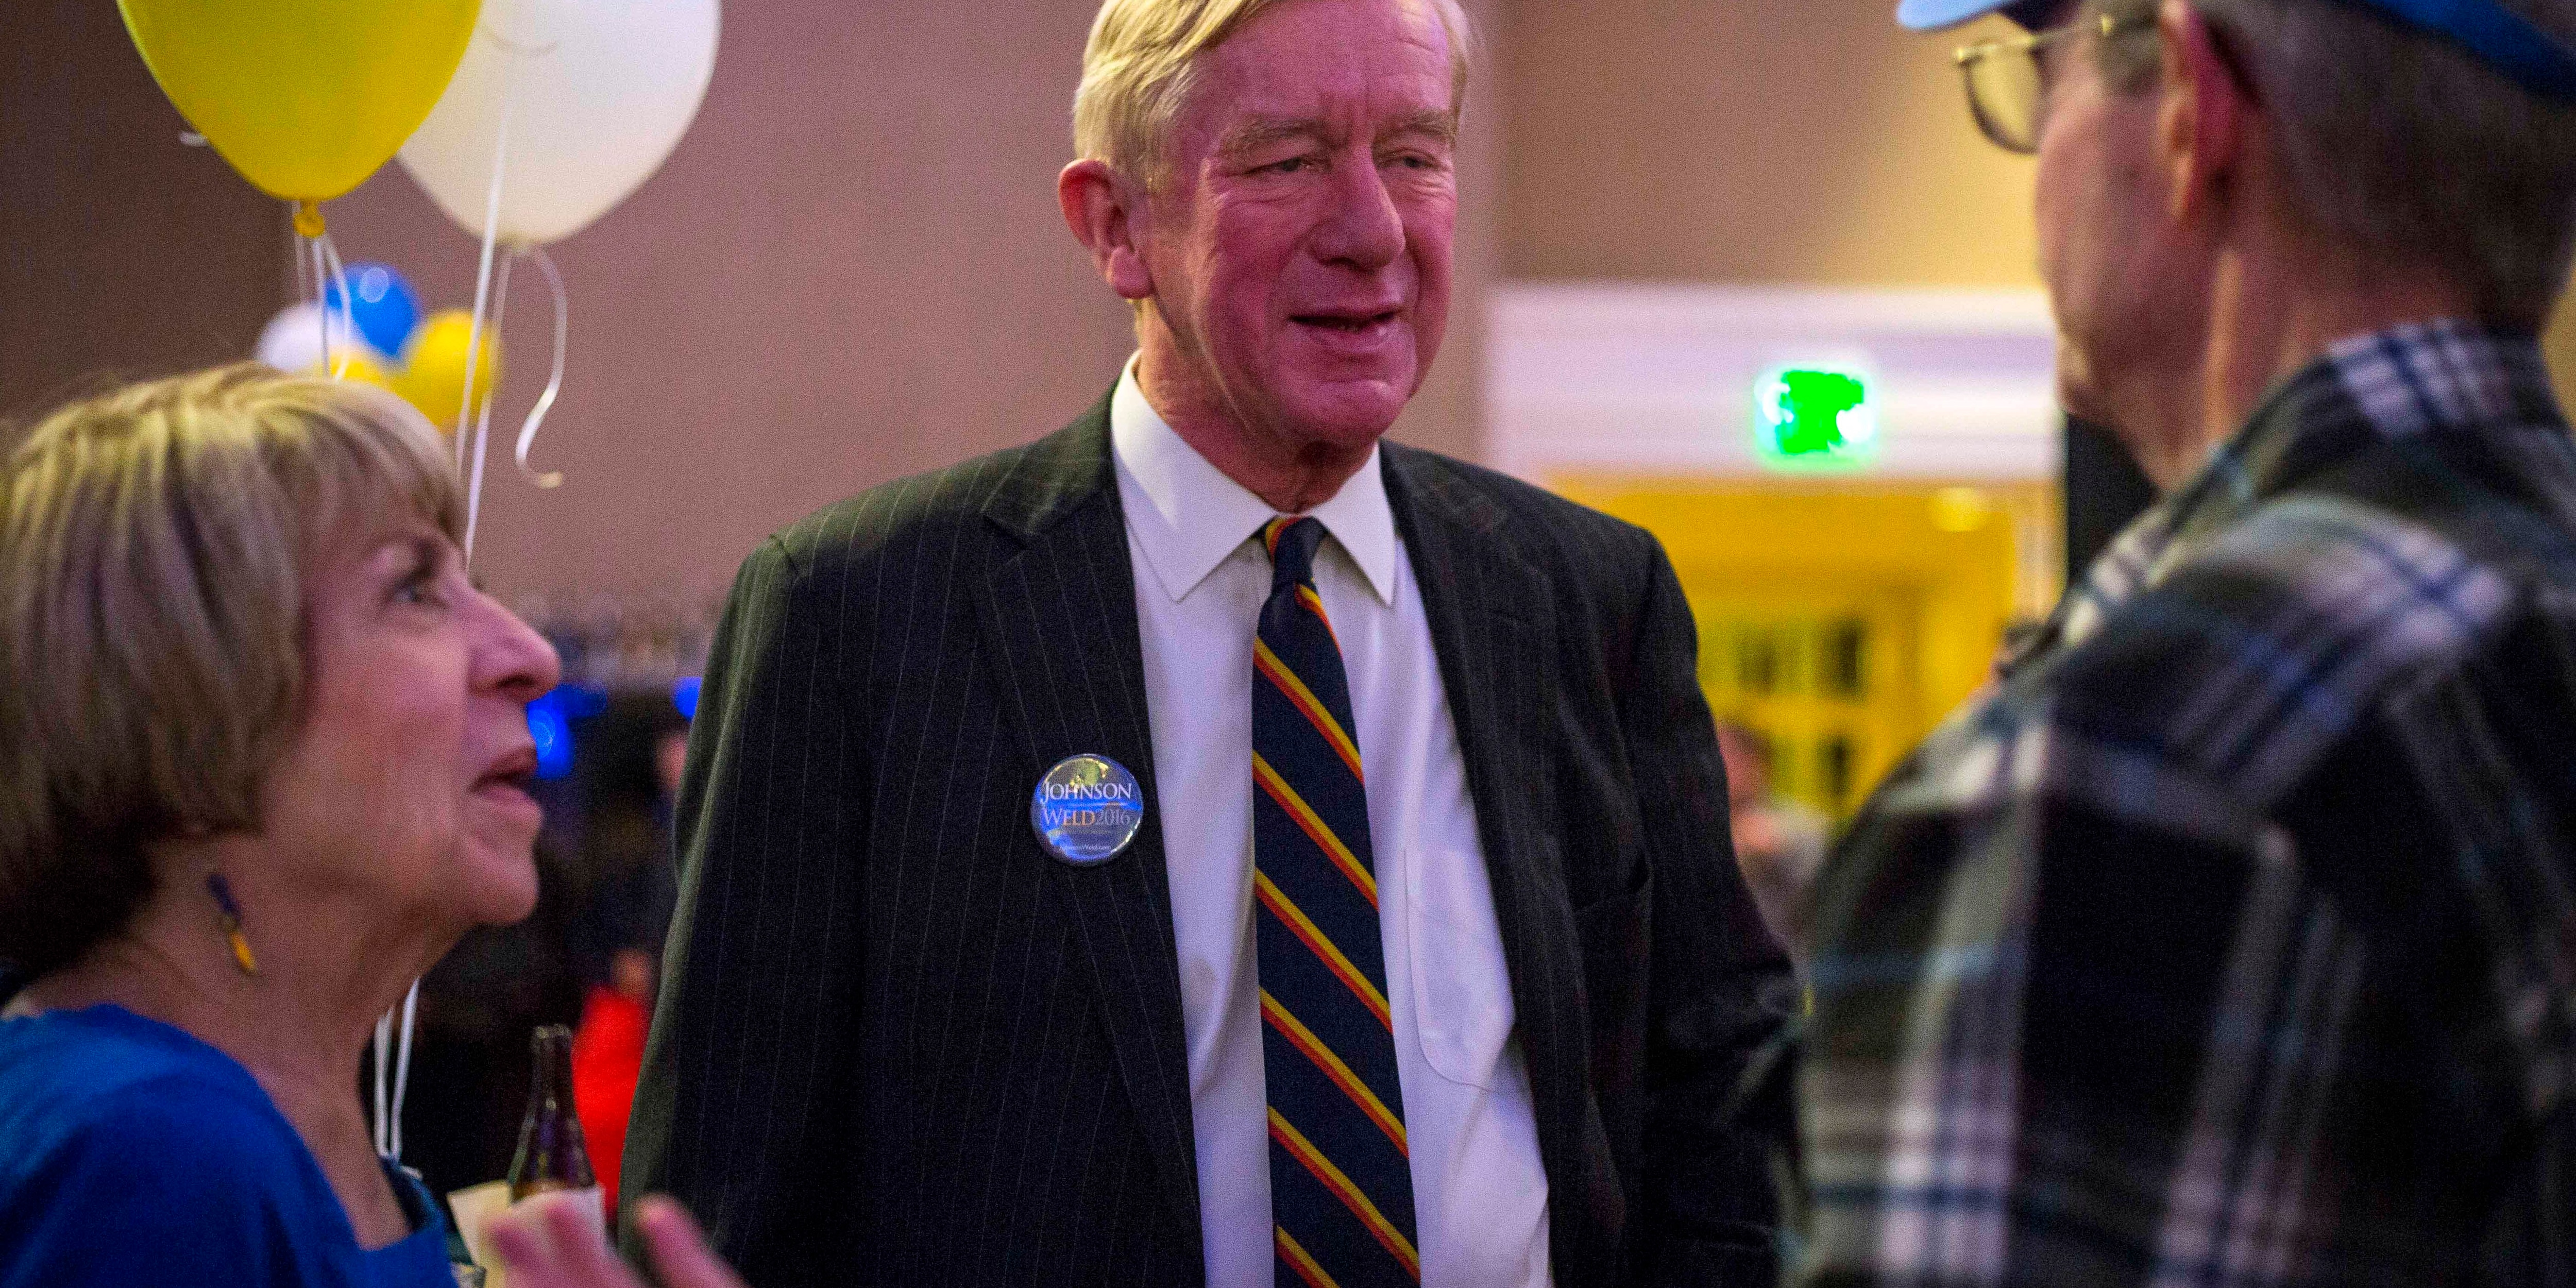 Former Mass. governor announces GOP primary challenge to Trump